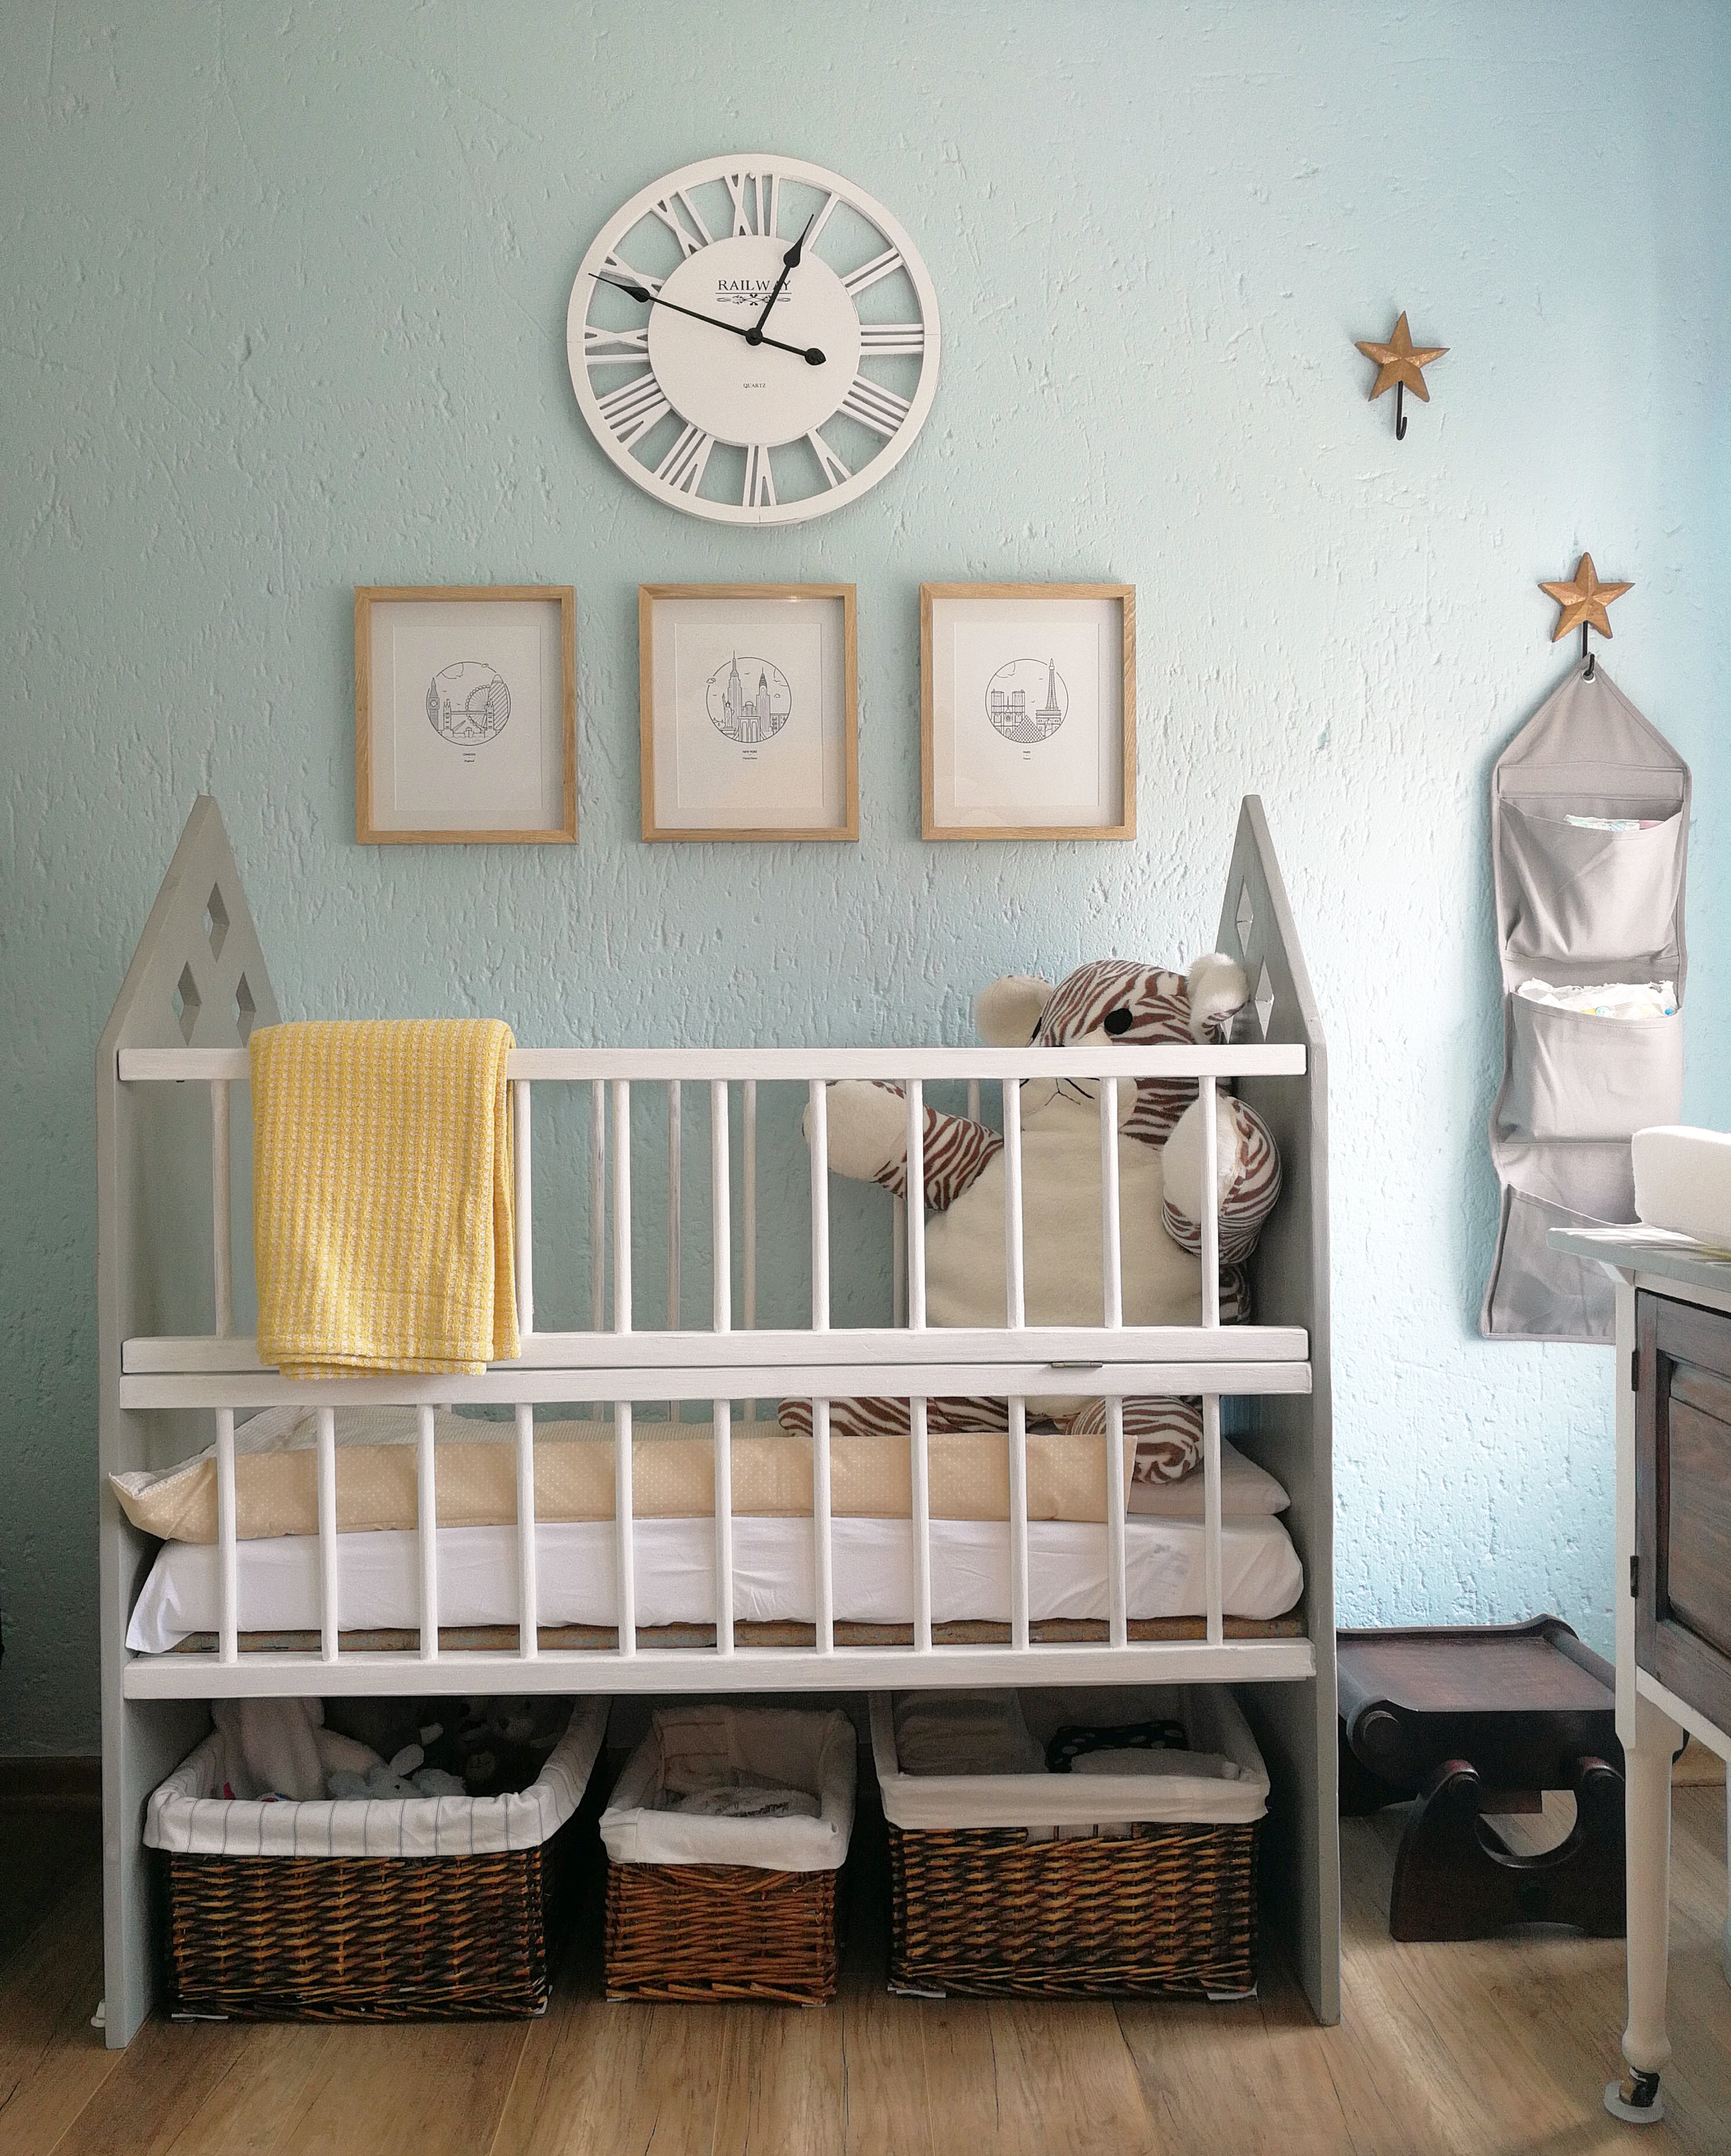 grey and white cot painting in fired earth chalk paint for nursery with travel theme, and white clock and prints of travel New York, Paris, London, designed by Tassels & Tigers Interior Decor and Designer in Johannesburg, South Africa